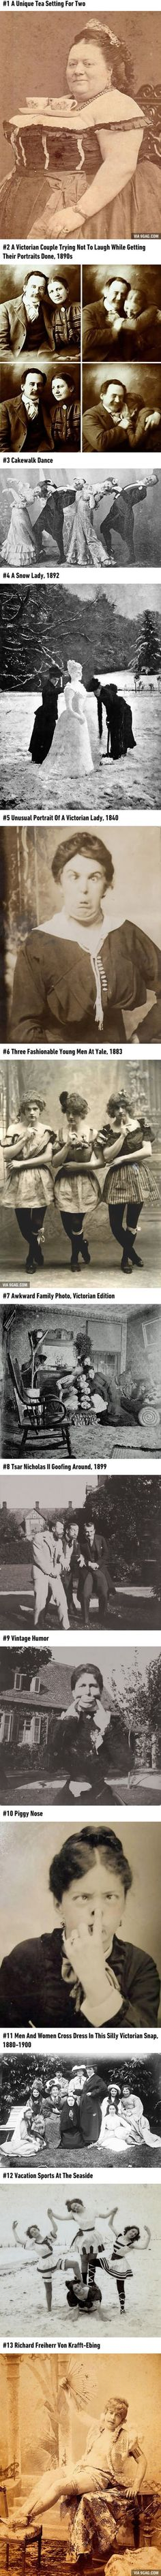 13 Rare Photos Of Victorians Proving They Weren't As Serious As You Thought 》the second is really cute :)